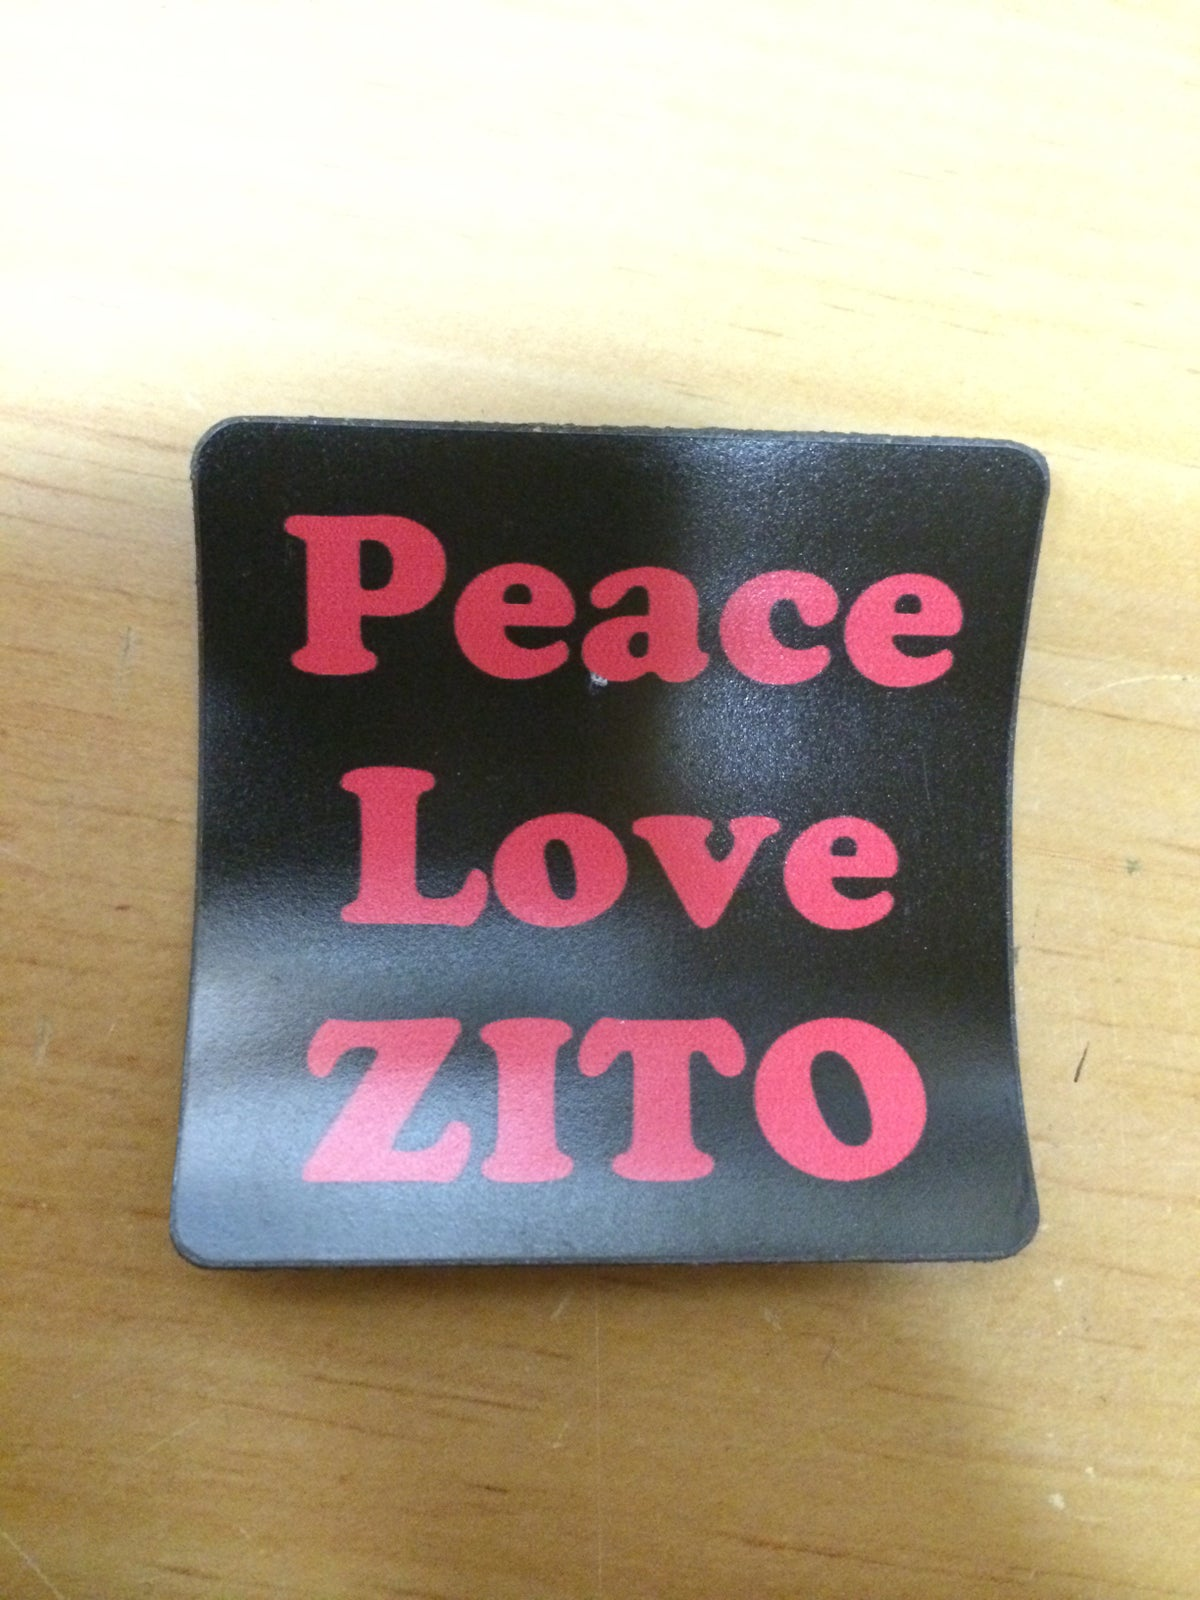 Image of 2 Peace Love Zito magnets